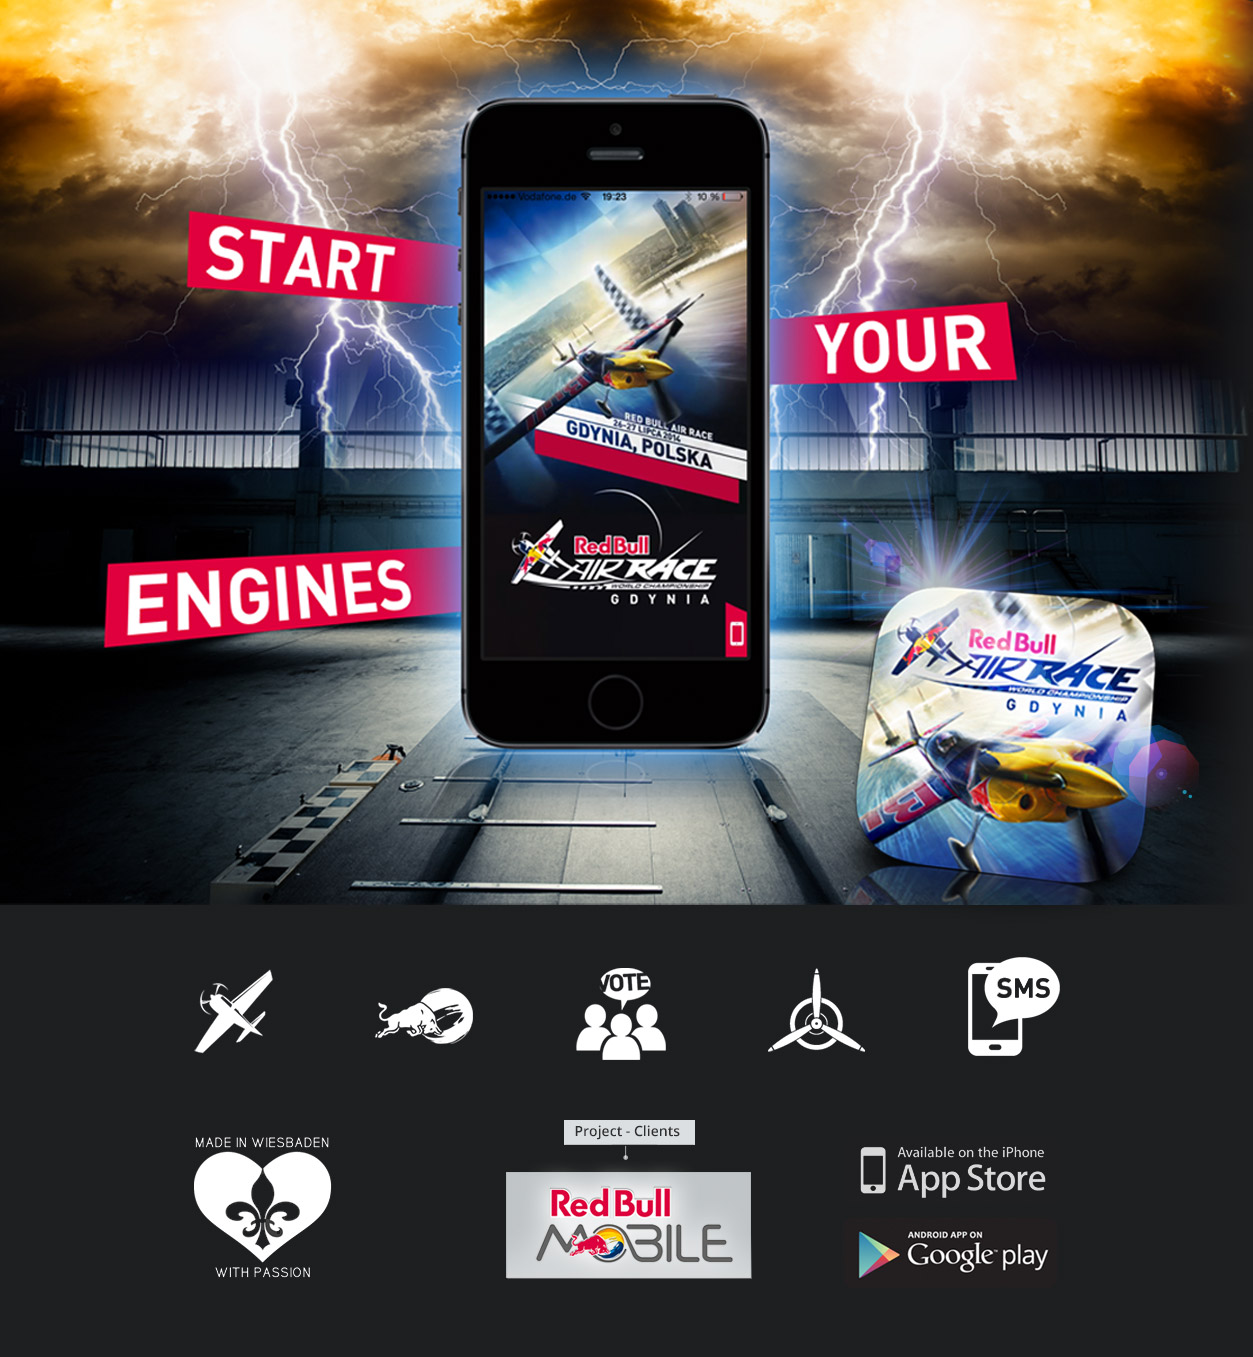 Red Bull Air Race App